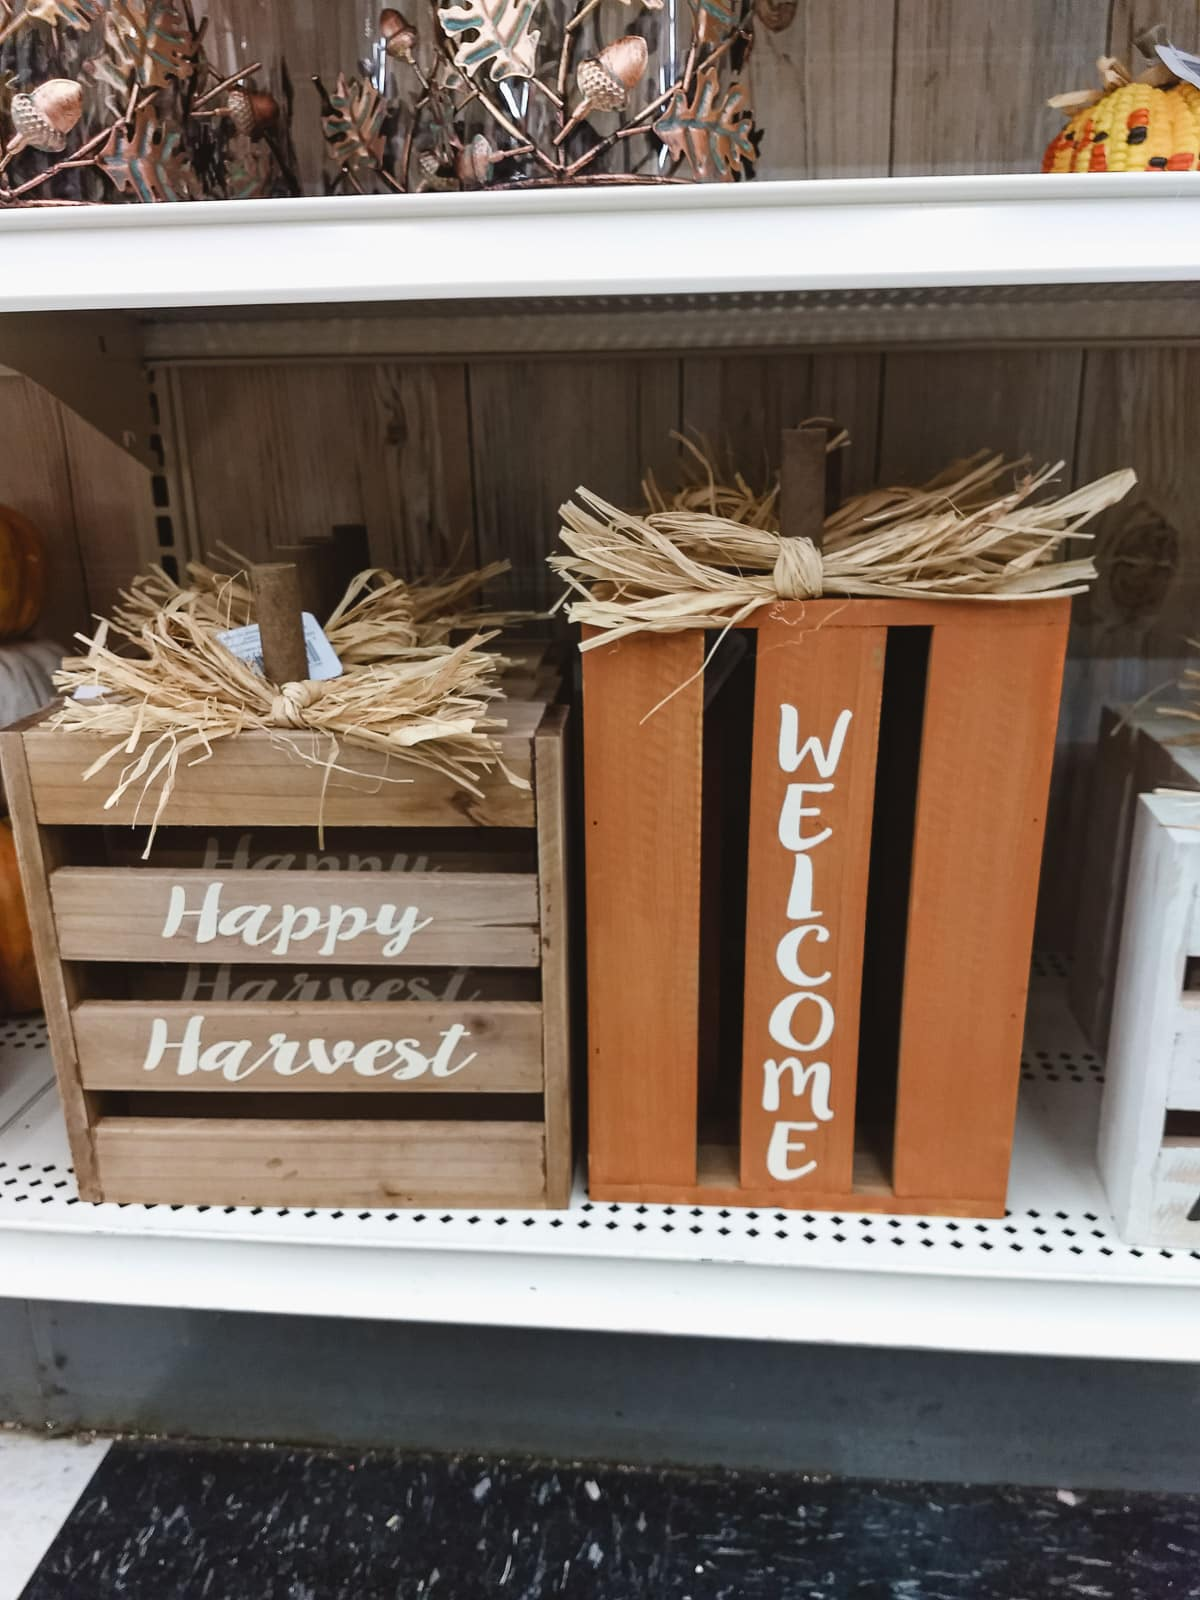 Pumpkins made from wooden crates at Michaels.